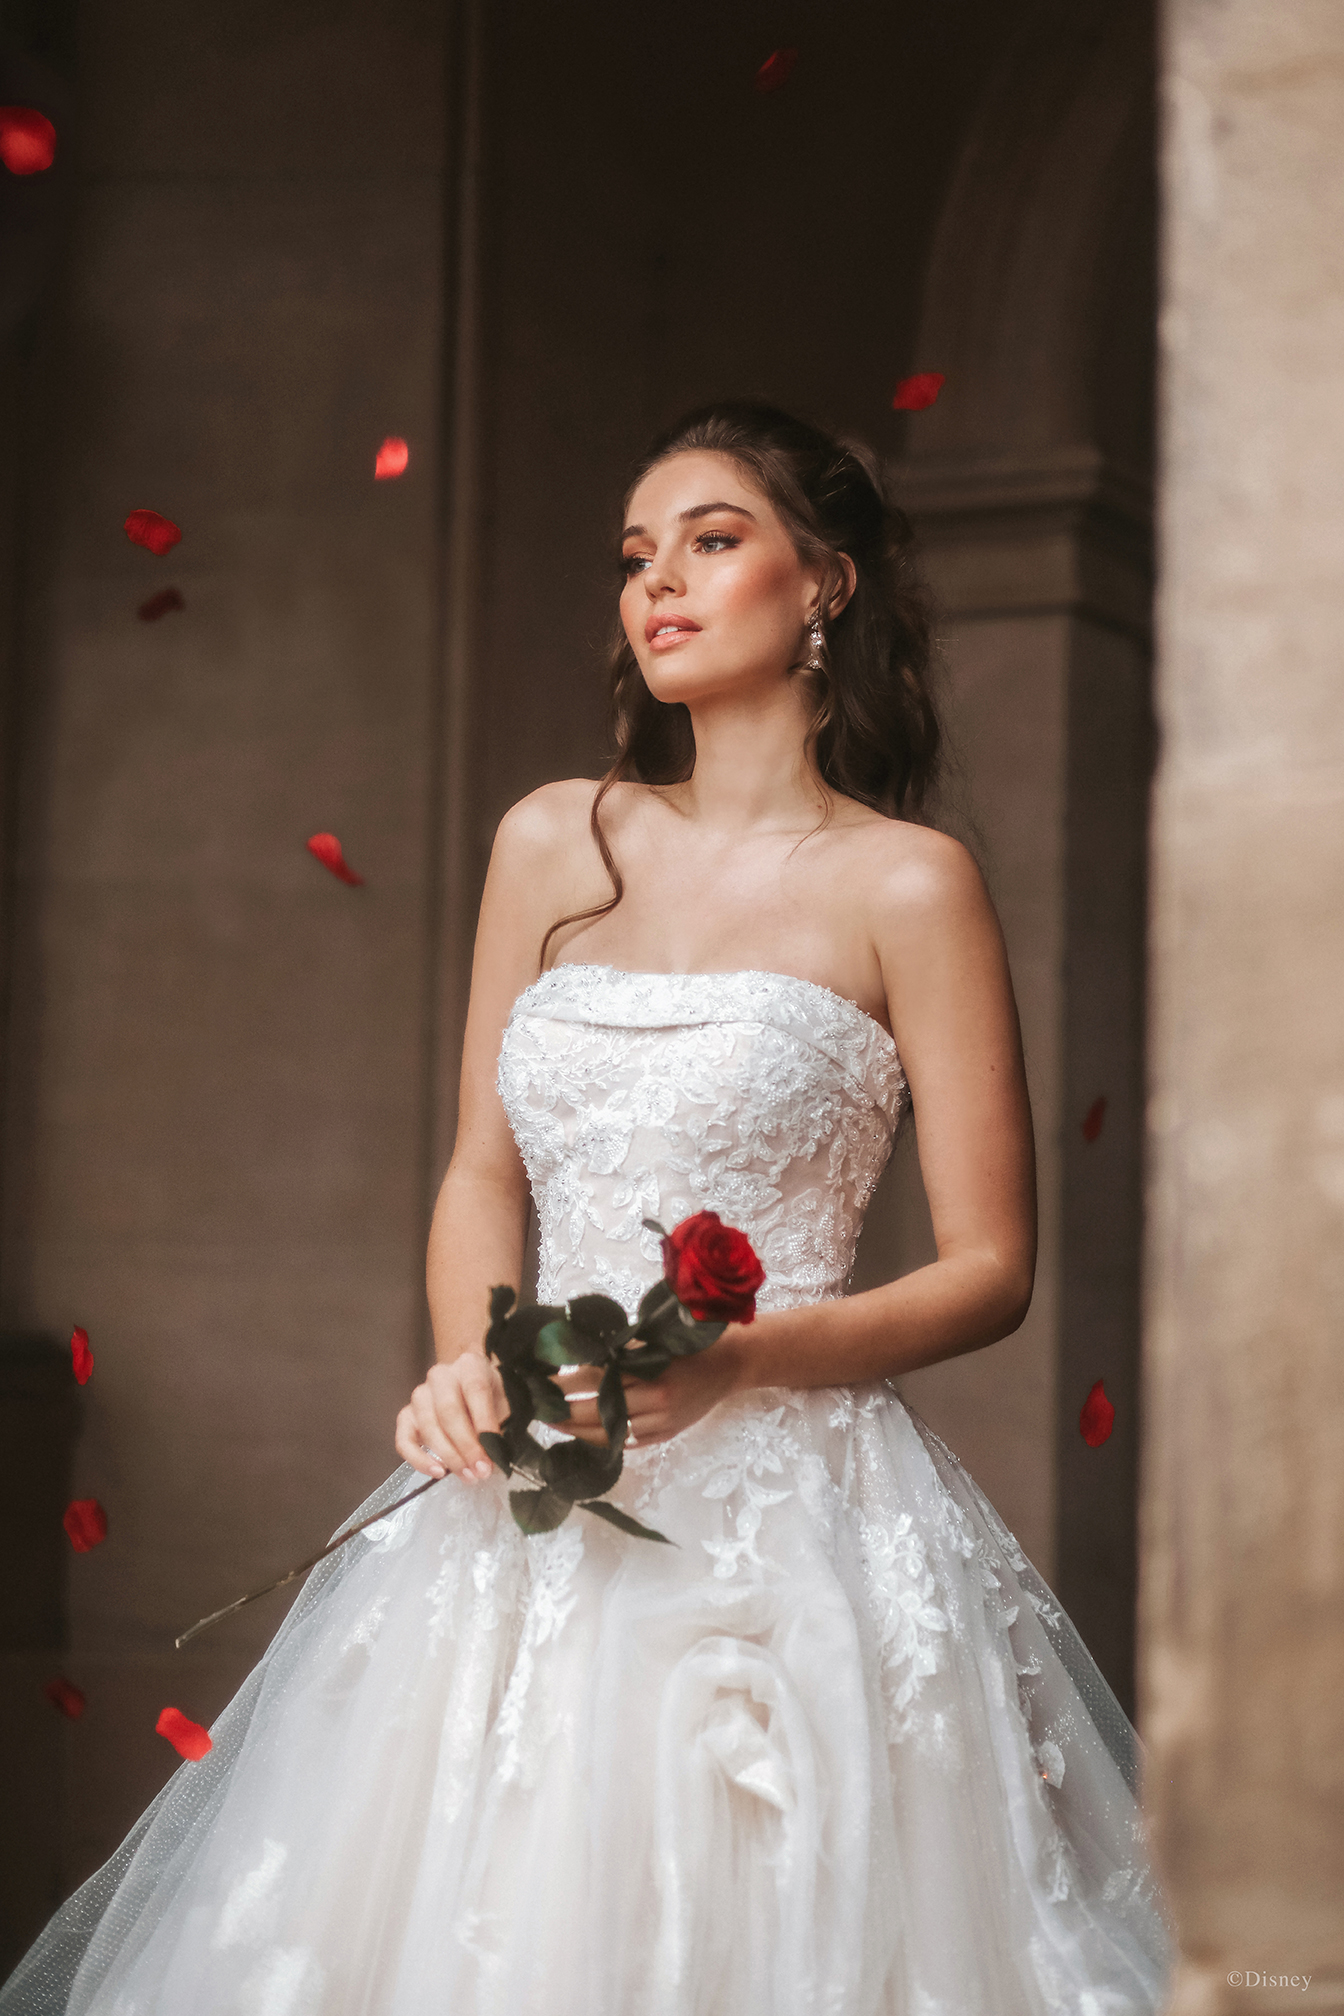 Paying tribute to the 30th anniversary of Disney's 'Beauty and the Beast', we created a ballgown with spectacular shimmering brocade featuring a beautiful rose pattern. Soft pickups across the sparkling tulle overlay lend additional texture and draw design inspiration from Belle's timeless ballgown silhouette.